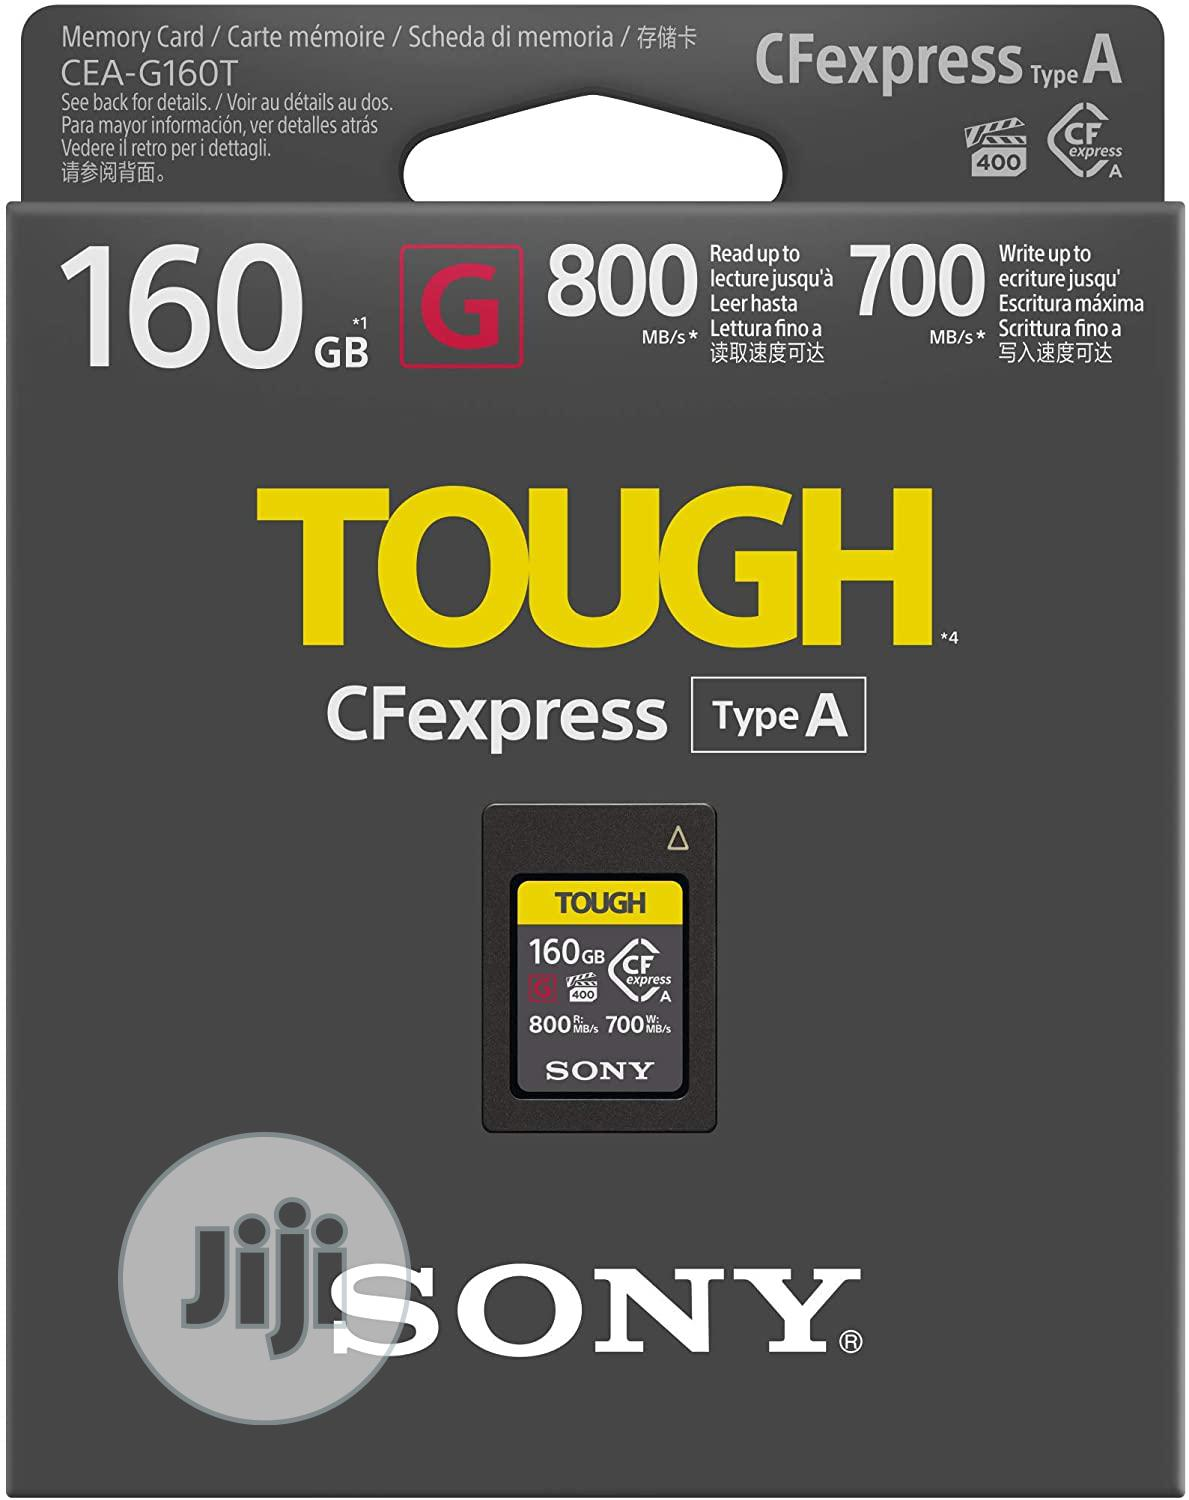 SONY 160gb Cfexpress Type a Memory Card 800mb/S